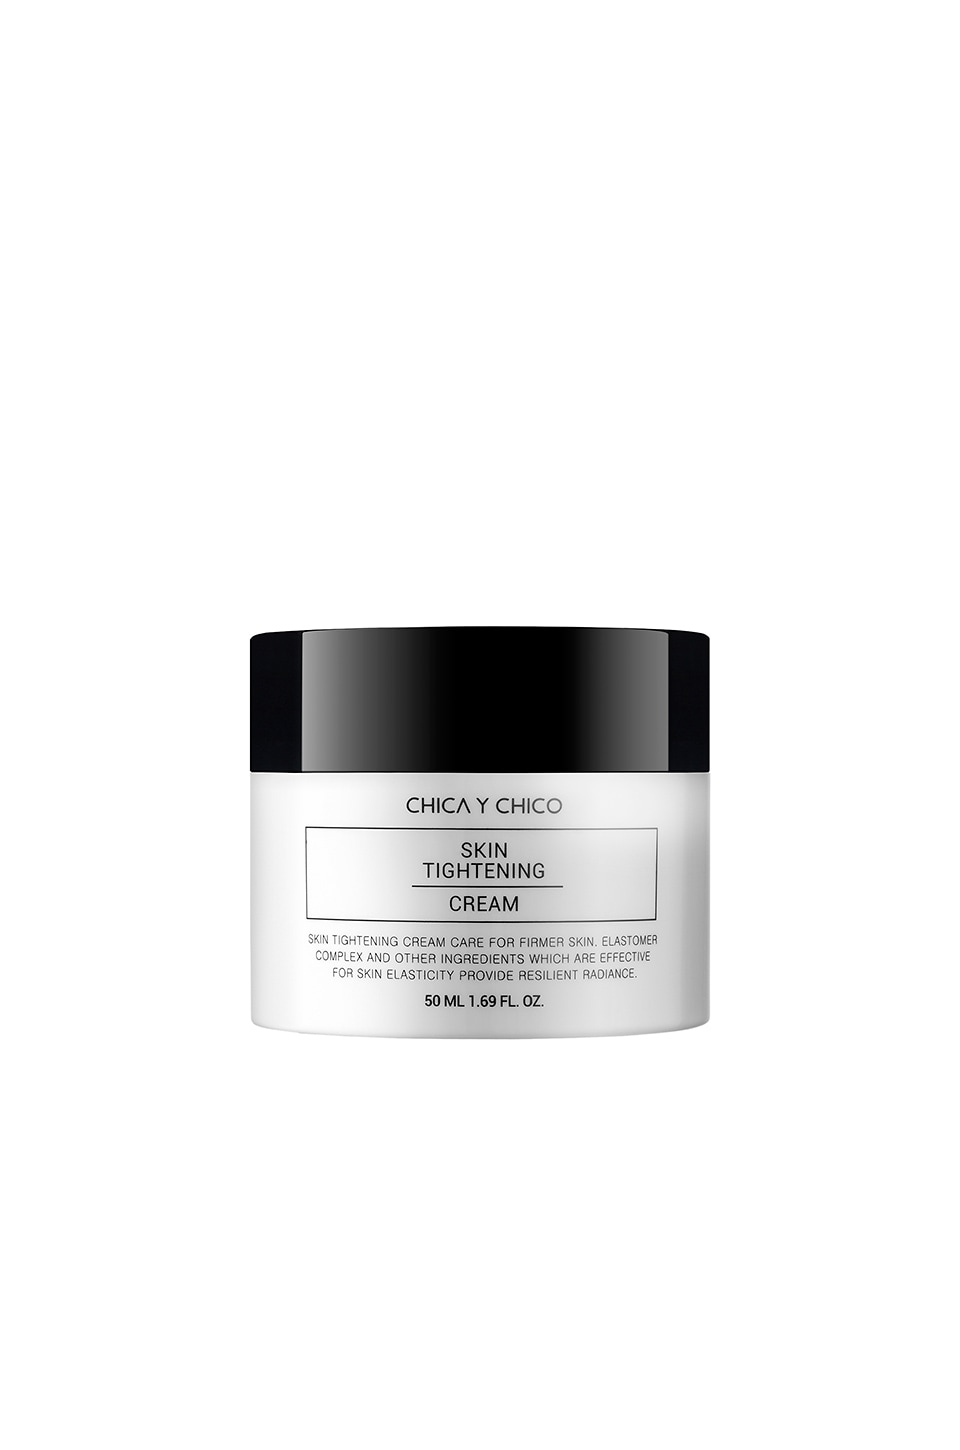 CHICA Y CHICO Skin Tightening Cream in Beauty: Na